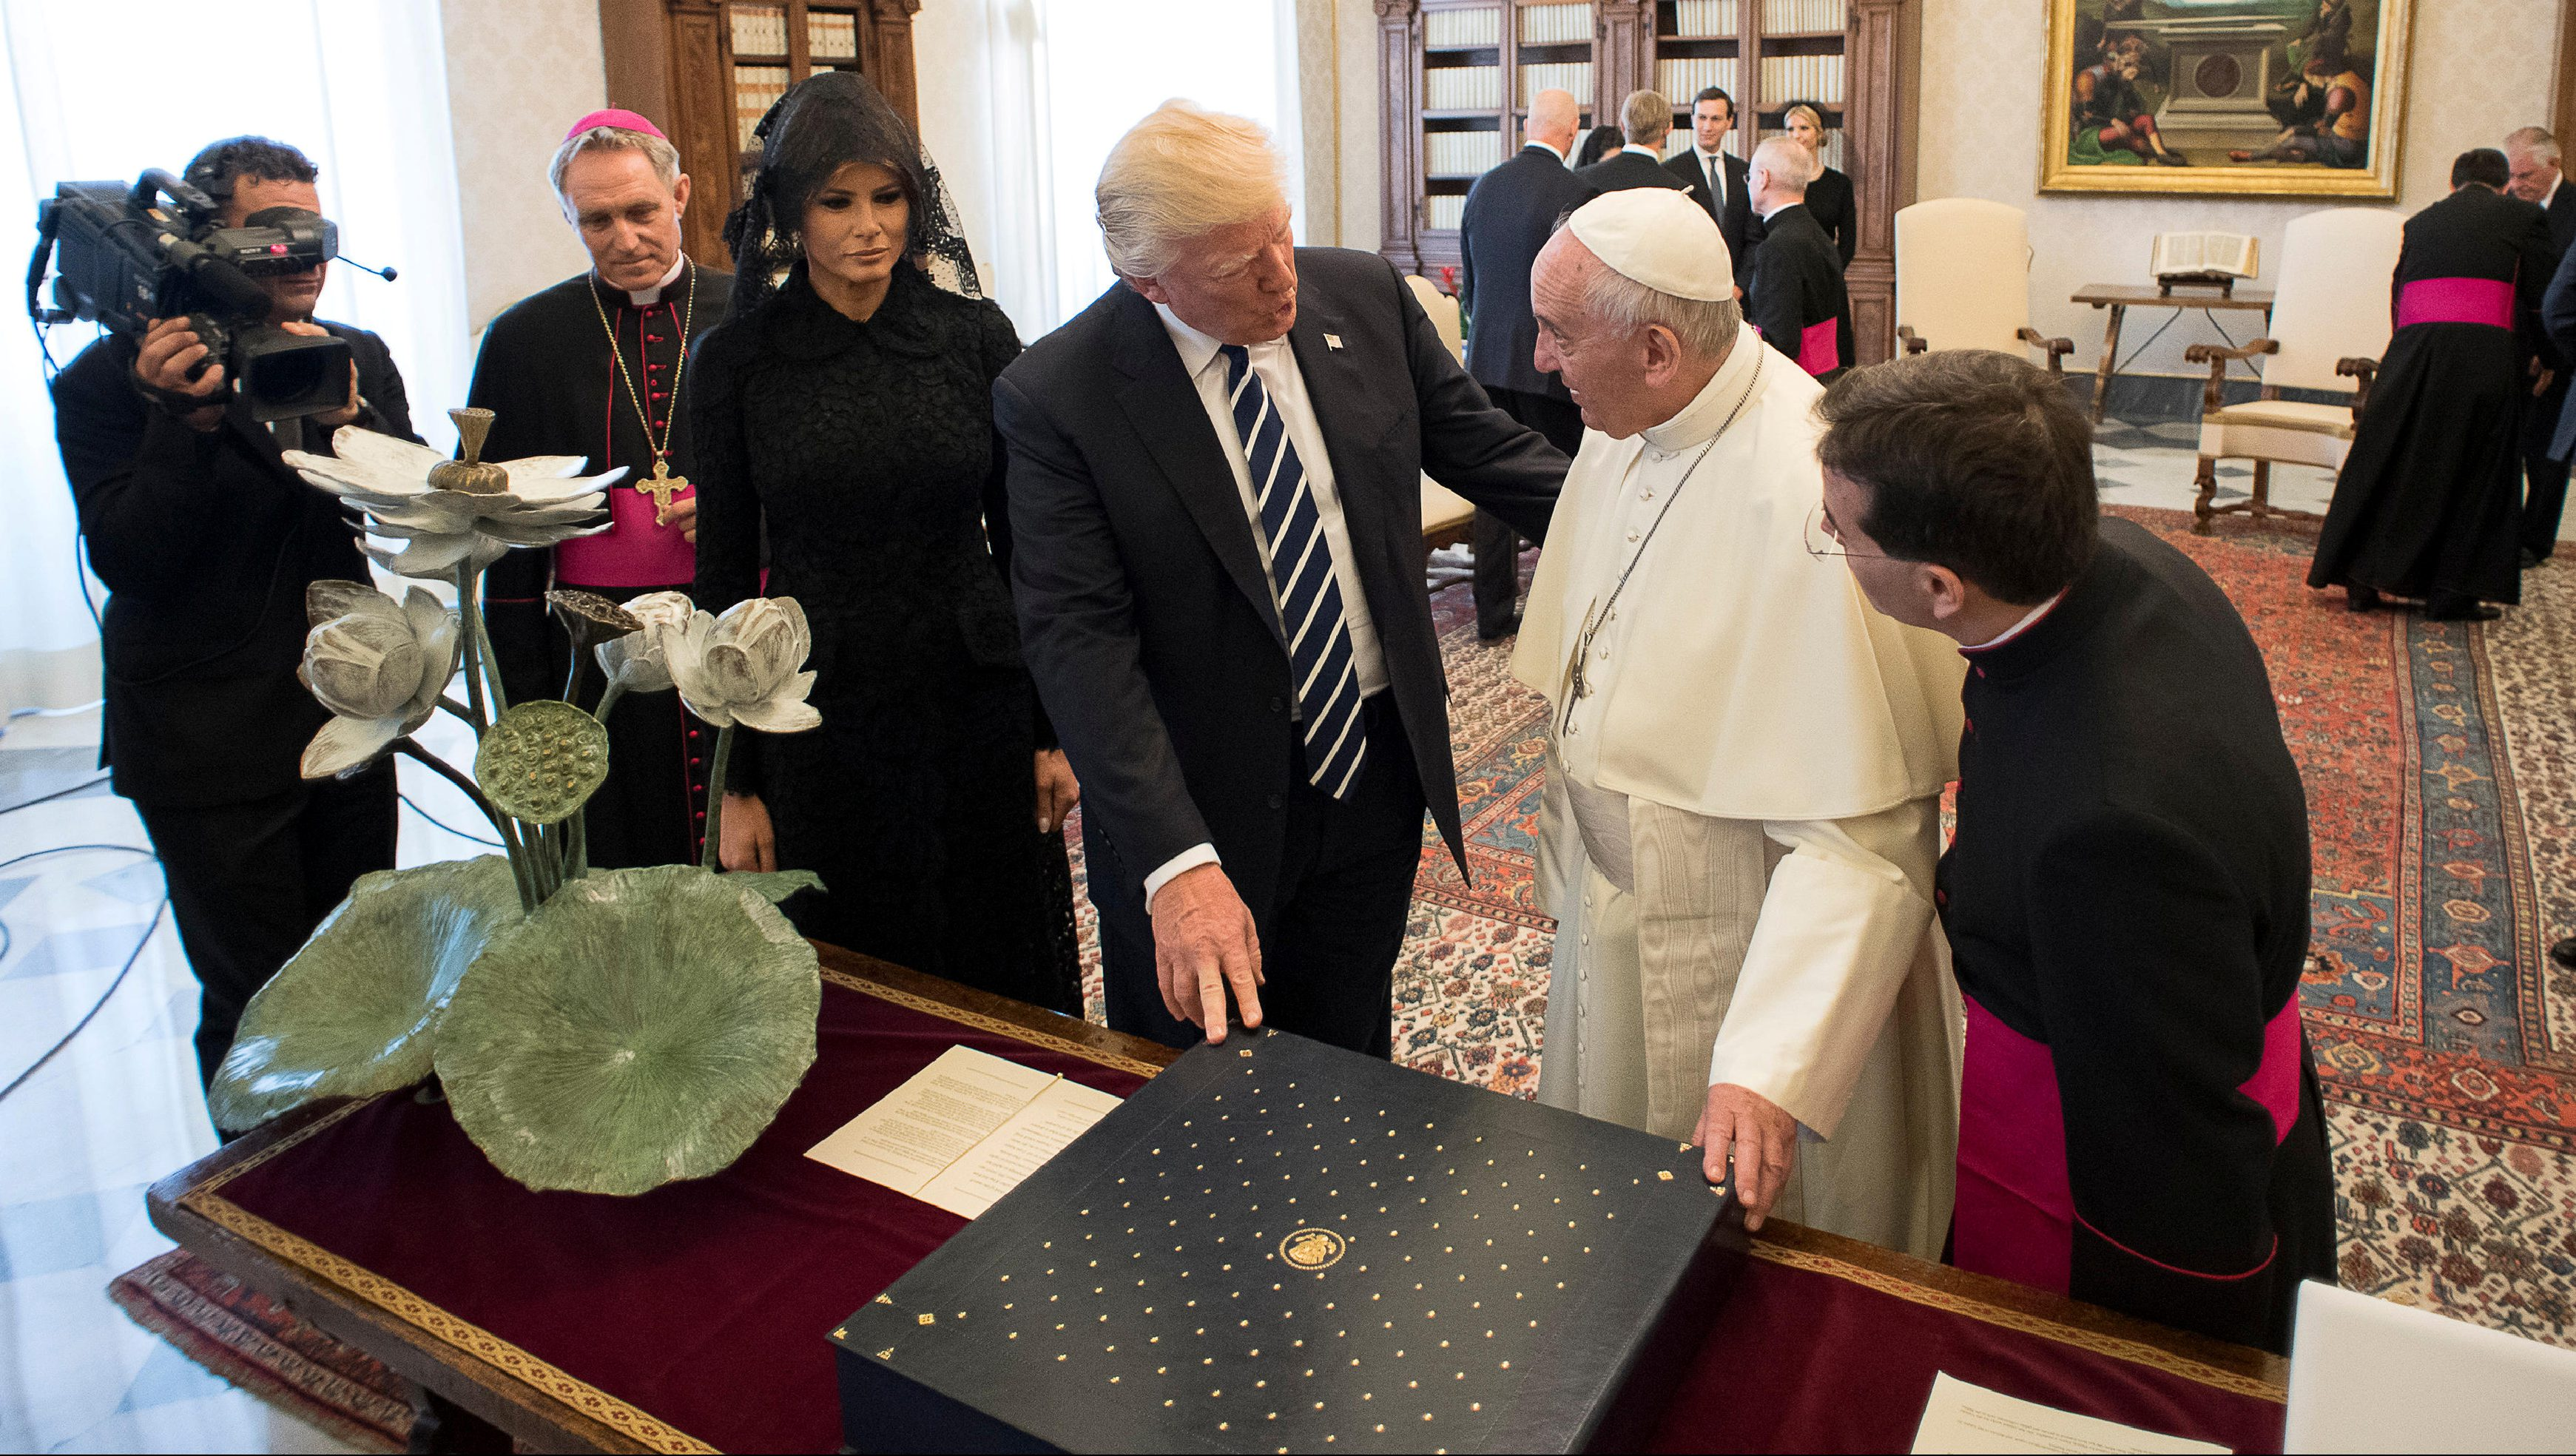 Pope Francis exchanges gifts with U.S. President Donald Trump and his wife Melania during a private audience at the Vatican